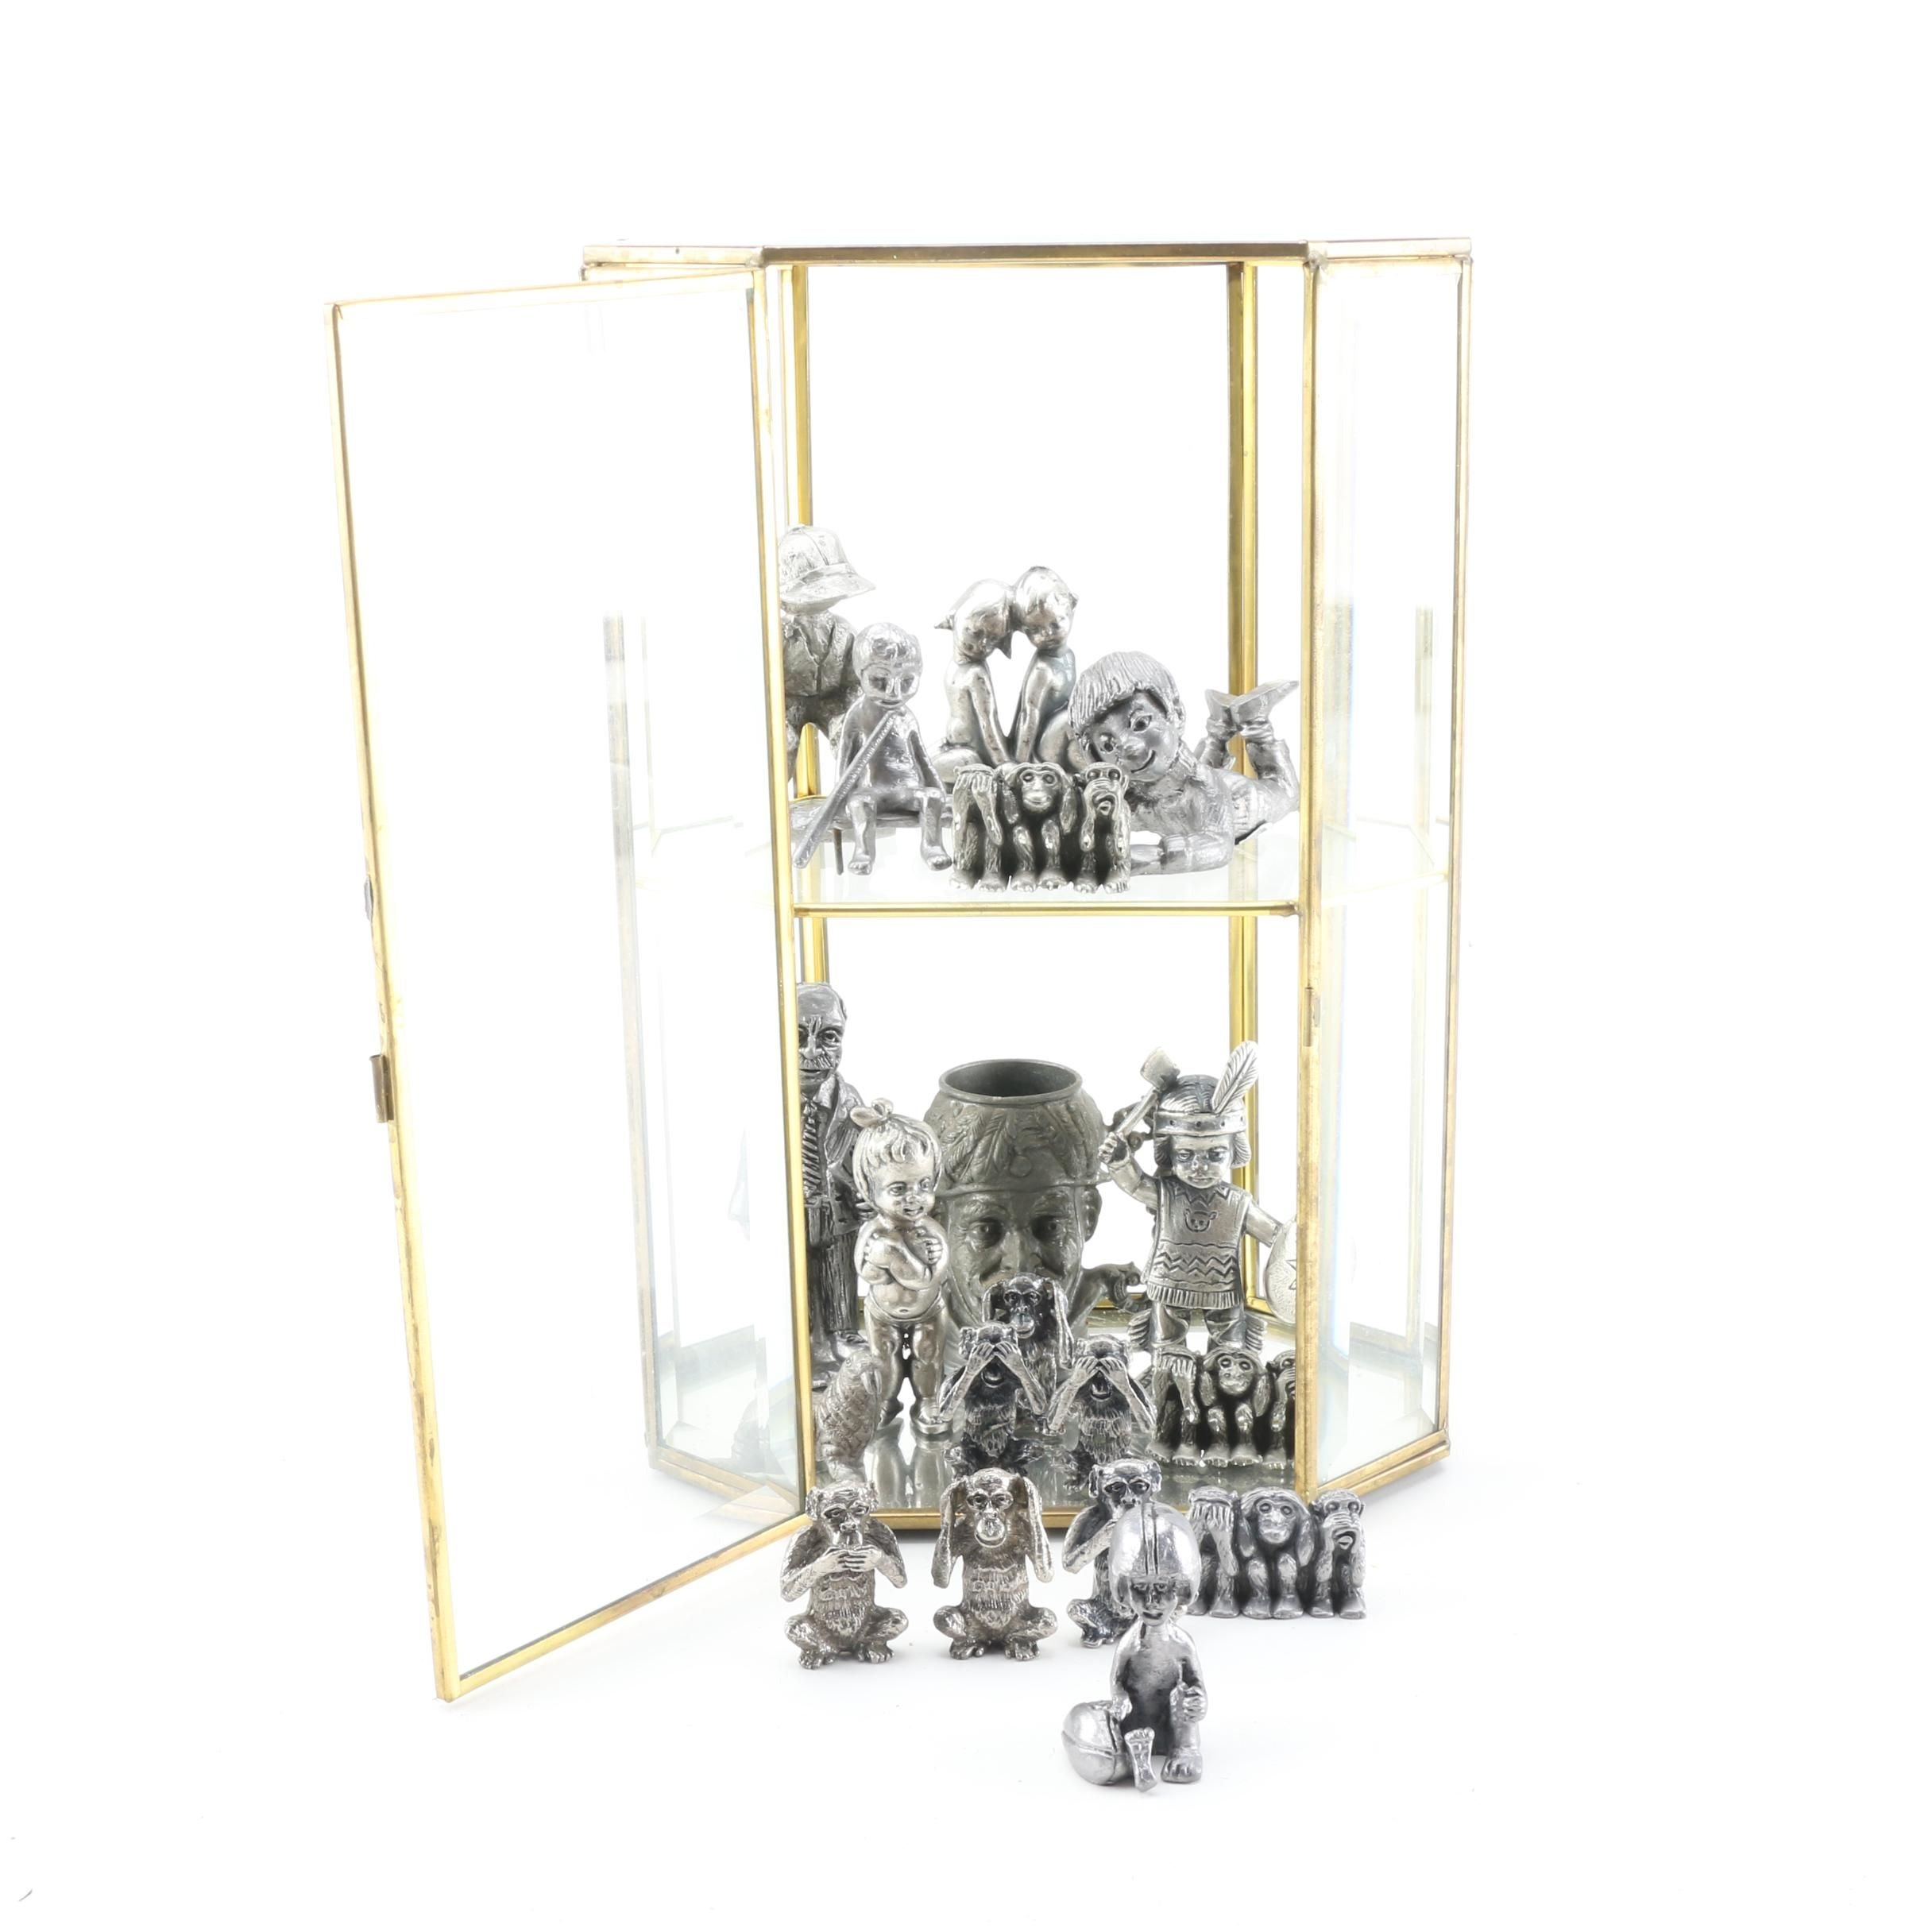 Collection of Pewter Figurines and Glass Display Case